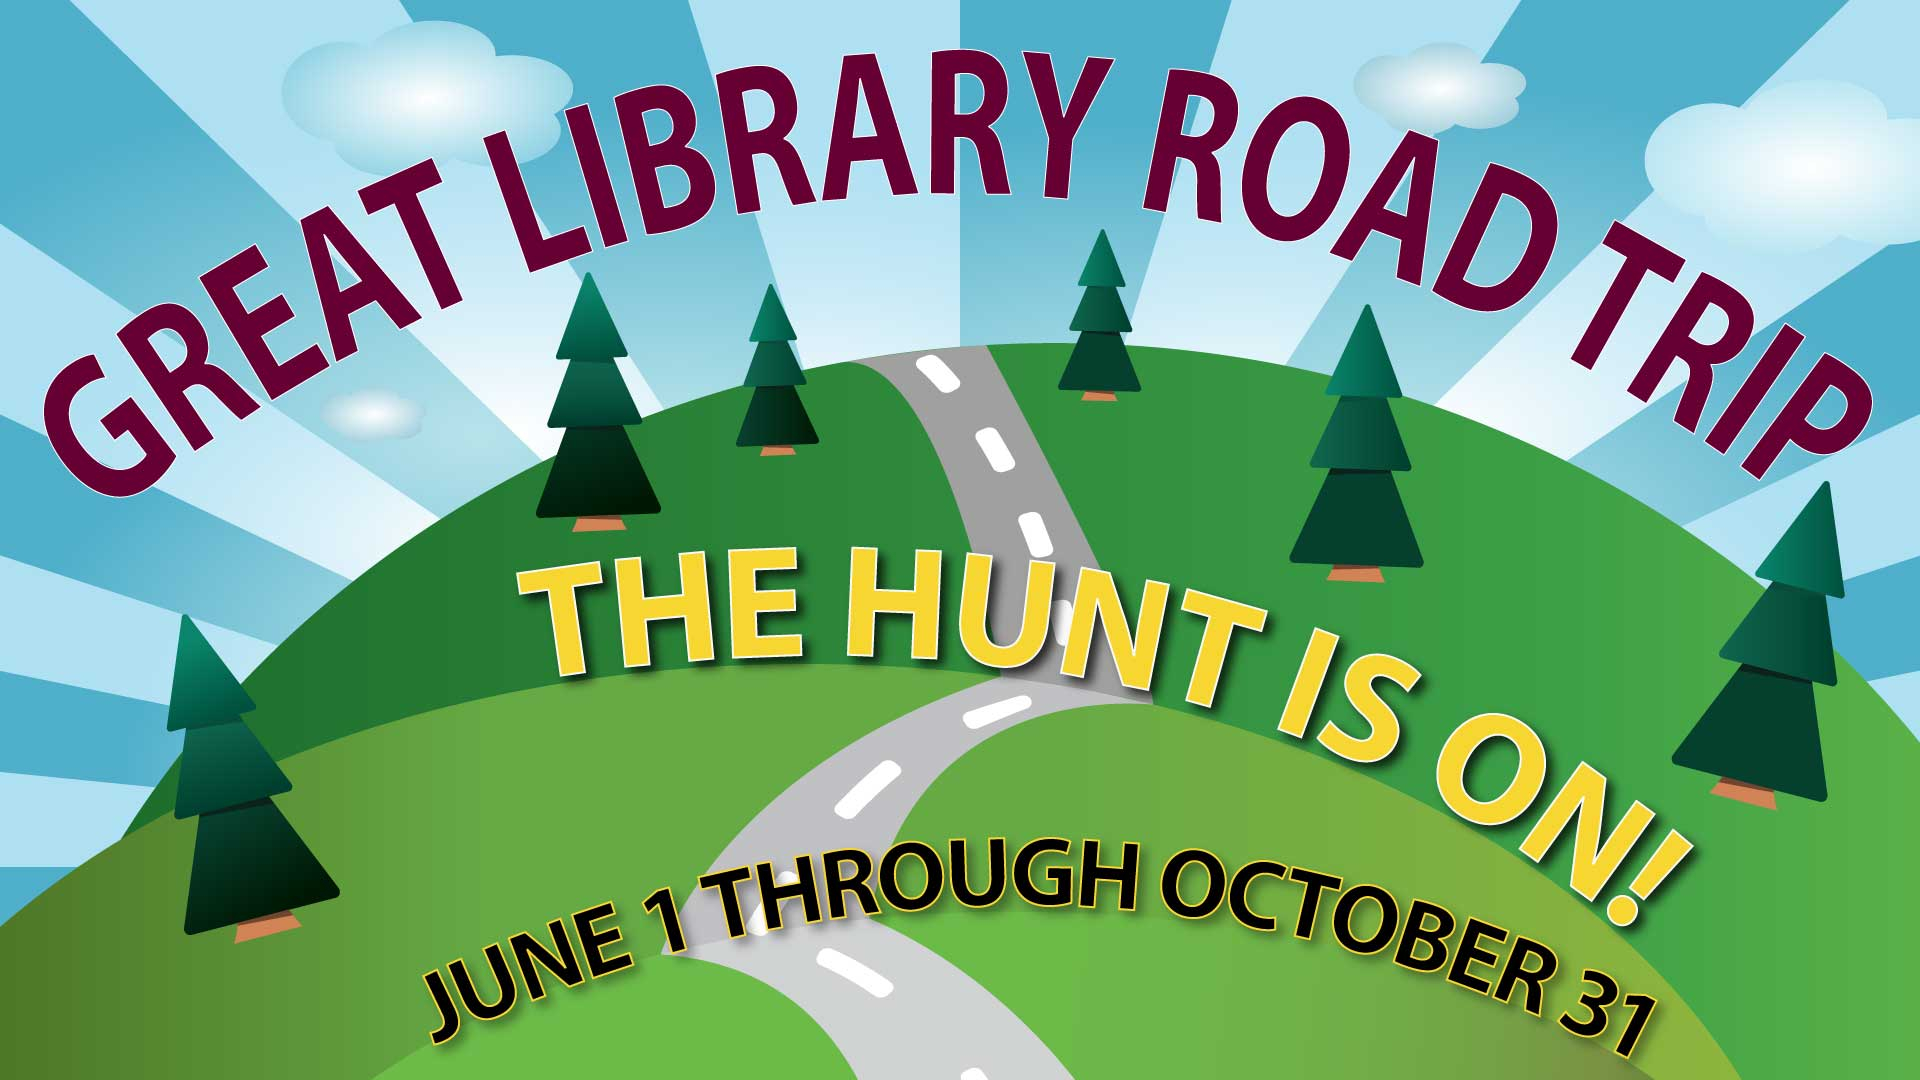 Great Library Road Trip